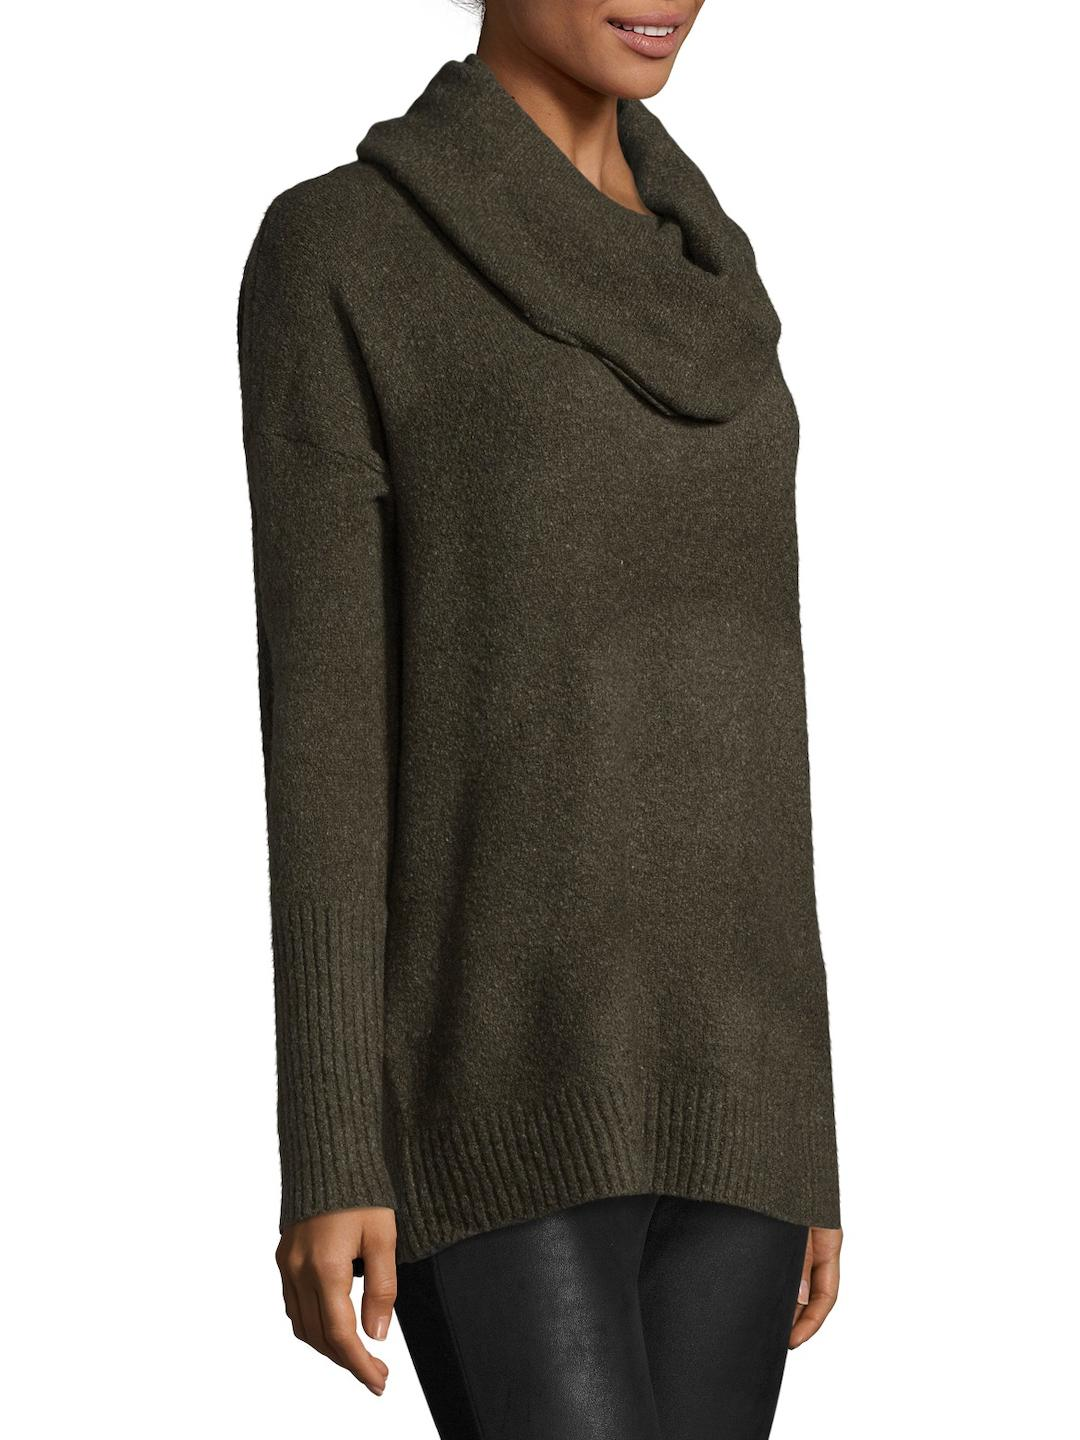 French connection Weekend Flossy Cowlneck Sweater in Green | Lyst